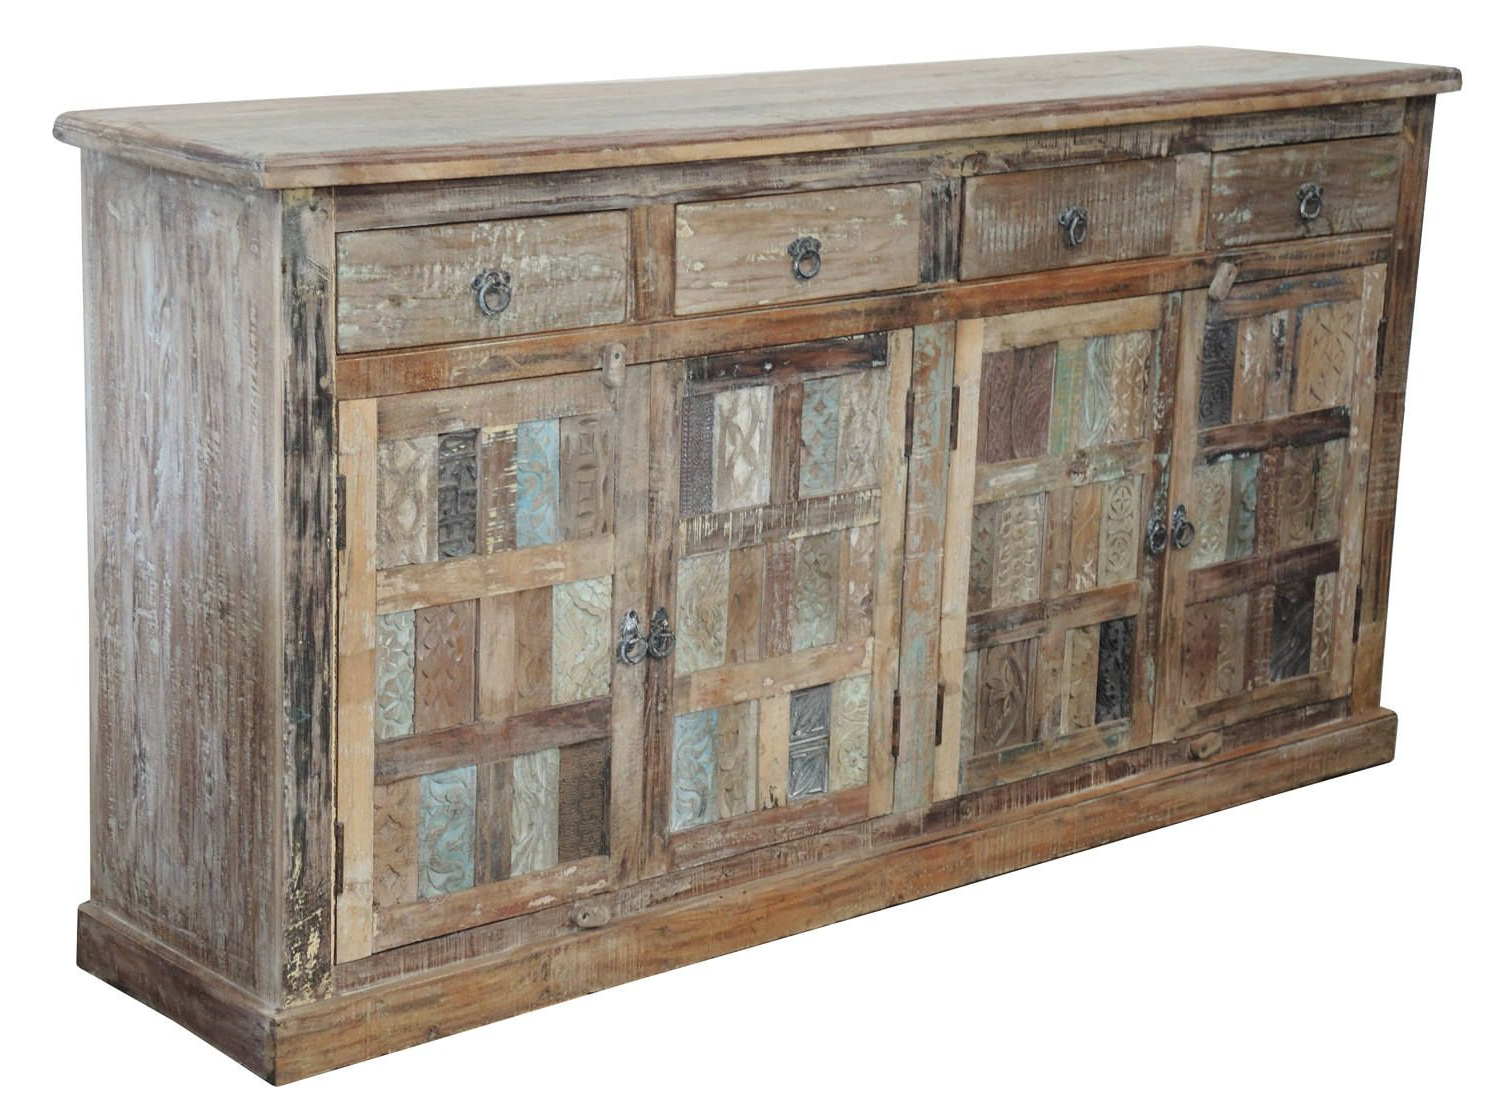 Light Distressed Indian Teak Cabinet From Terra Nova Designs Pertaining To Hayslett Sideboards (View 10 of 20)